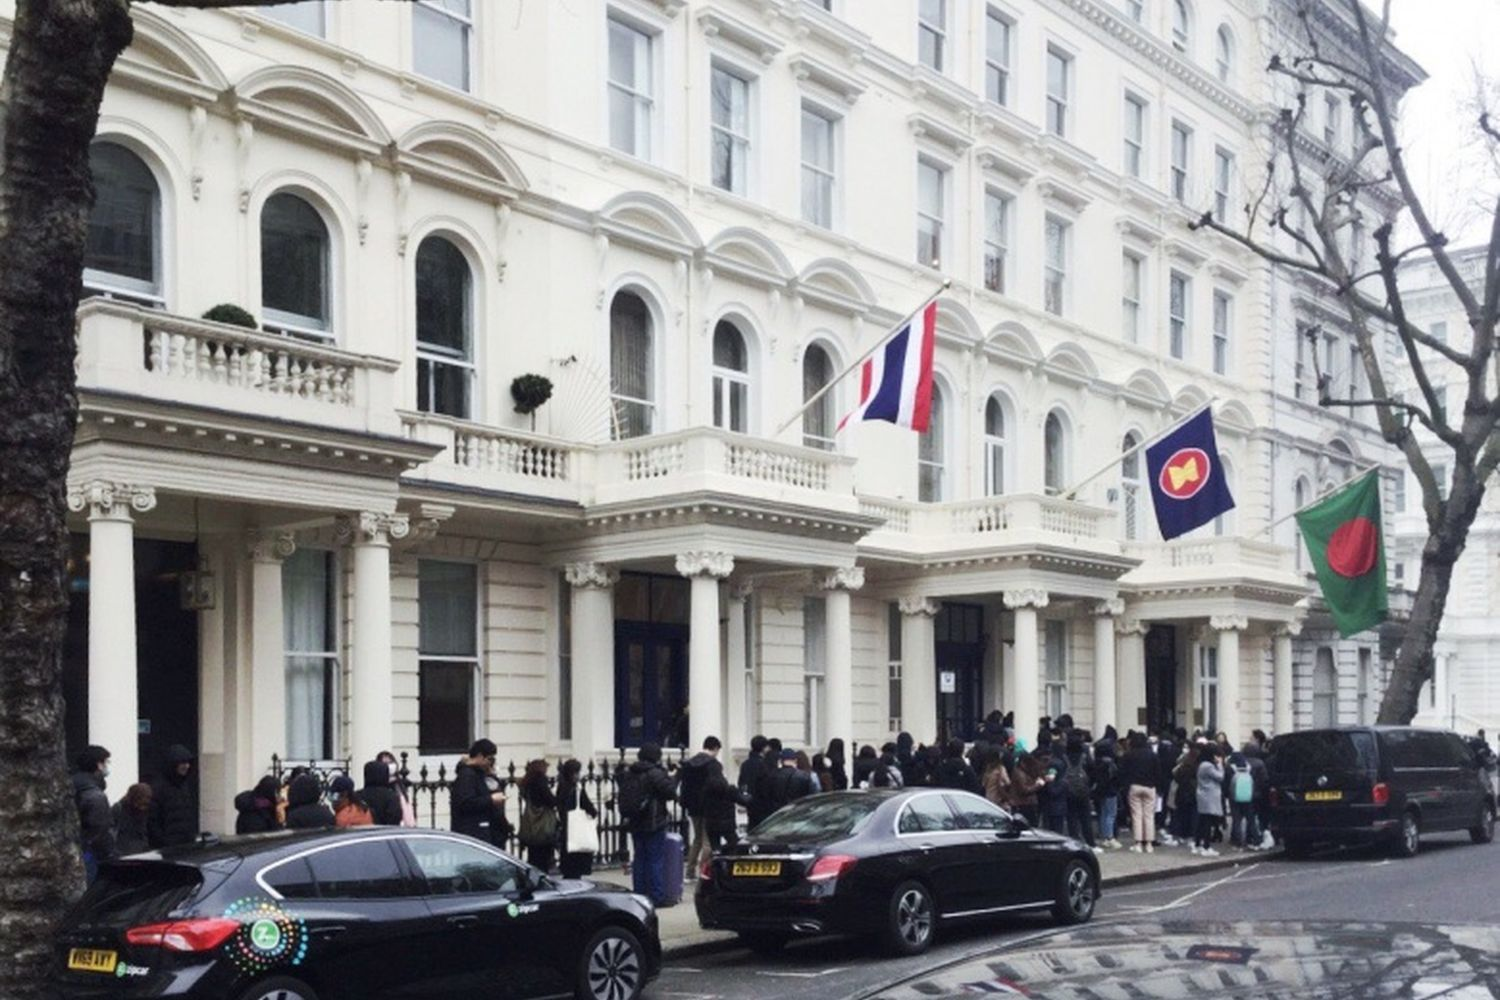 A long queue forms in front of the Thai embassy in London on March 20 as Thais seeking to go home seek documents required by the Civil Aviation Authority of Thailand. (Photo from Facebook@CHARLOTTE2500)